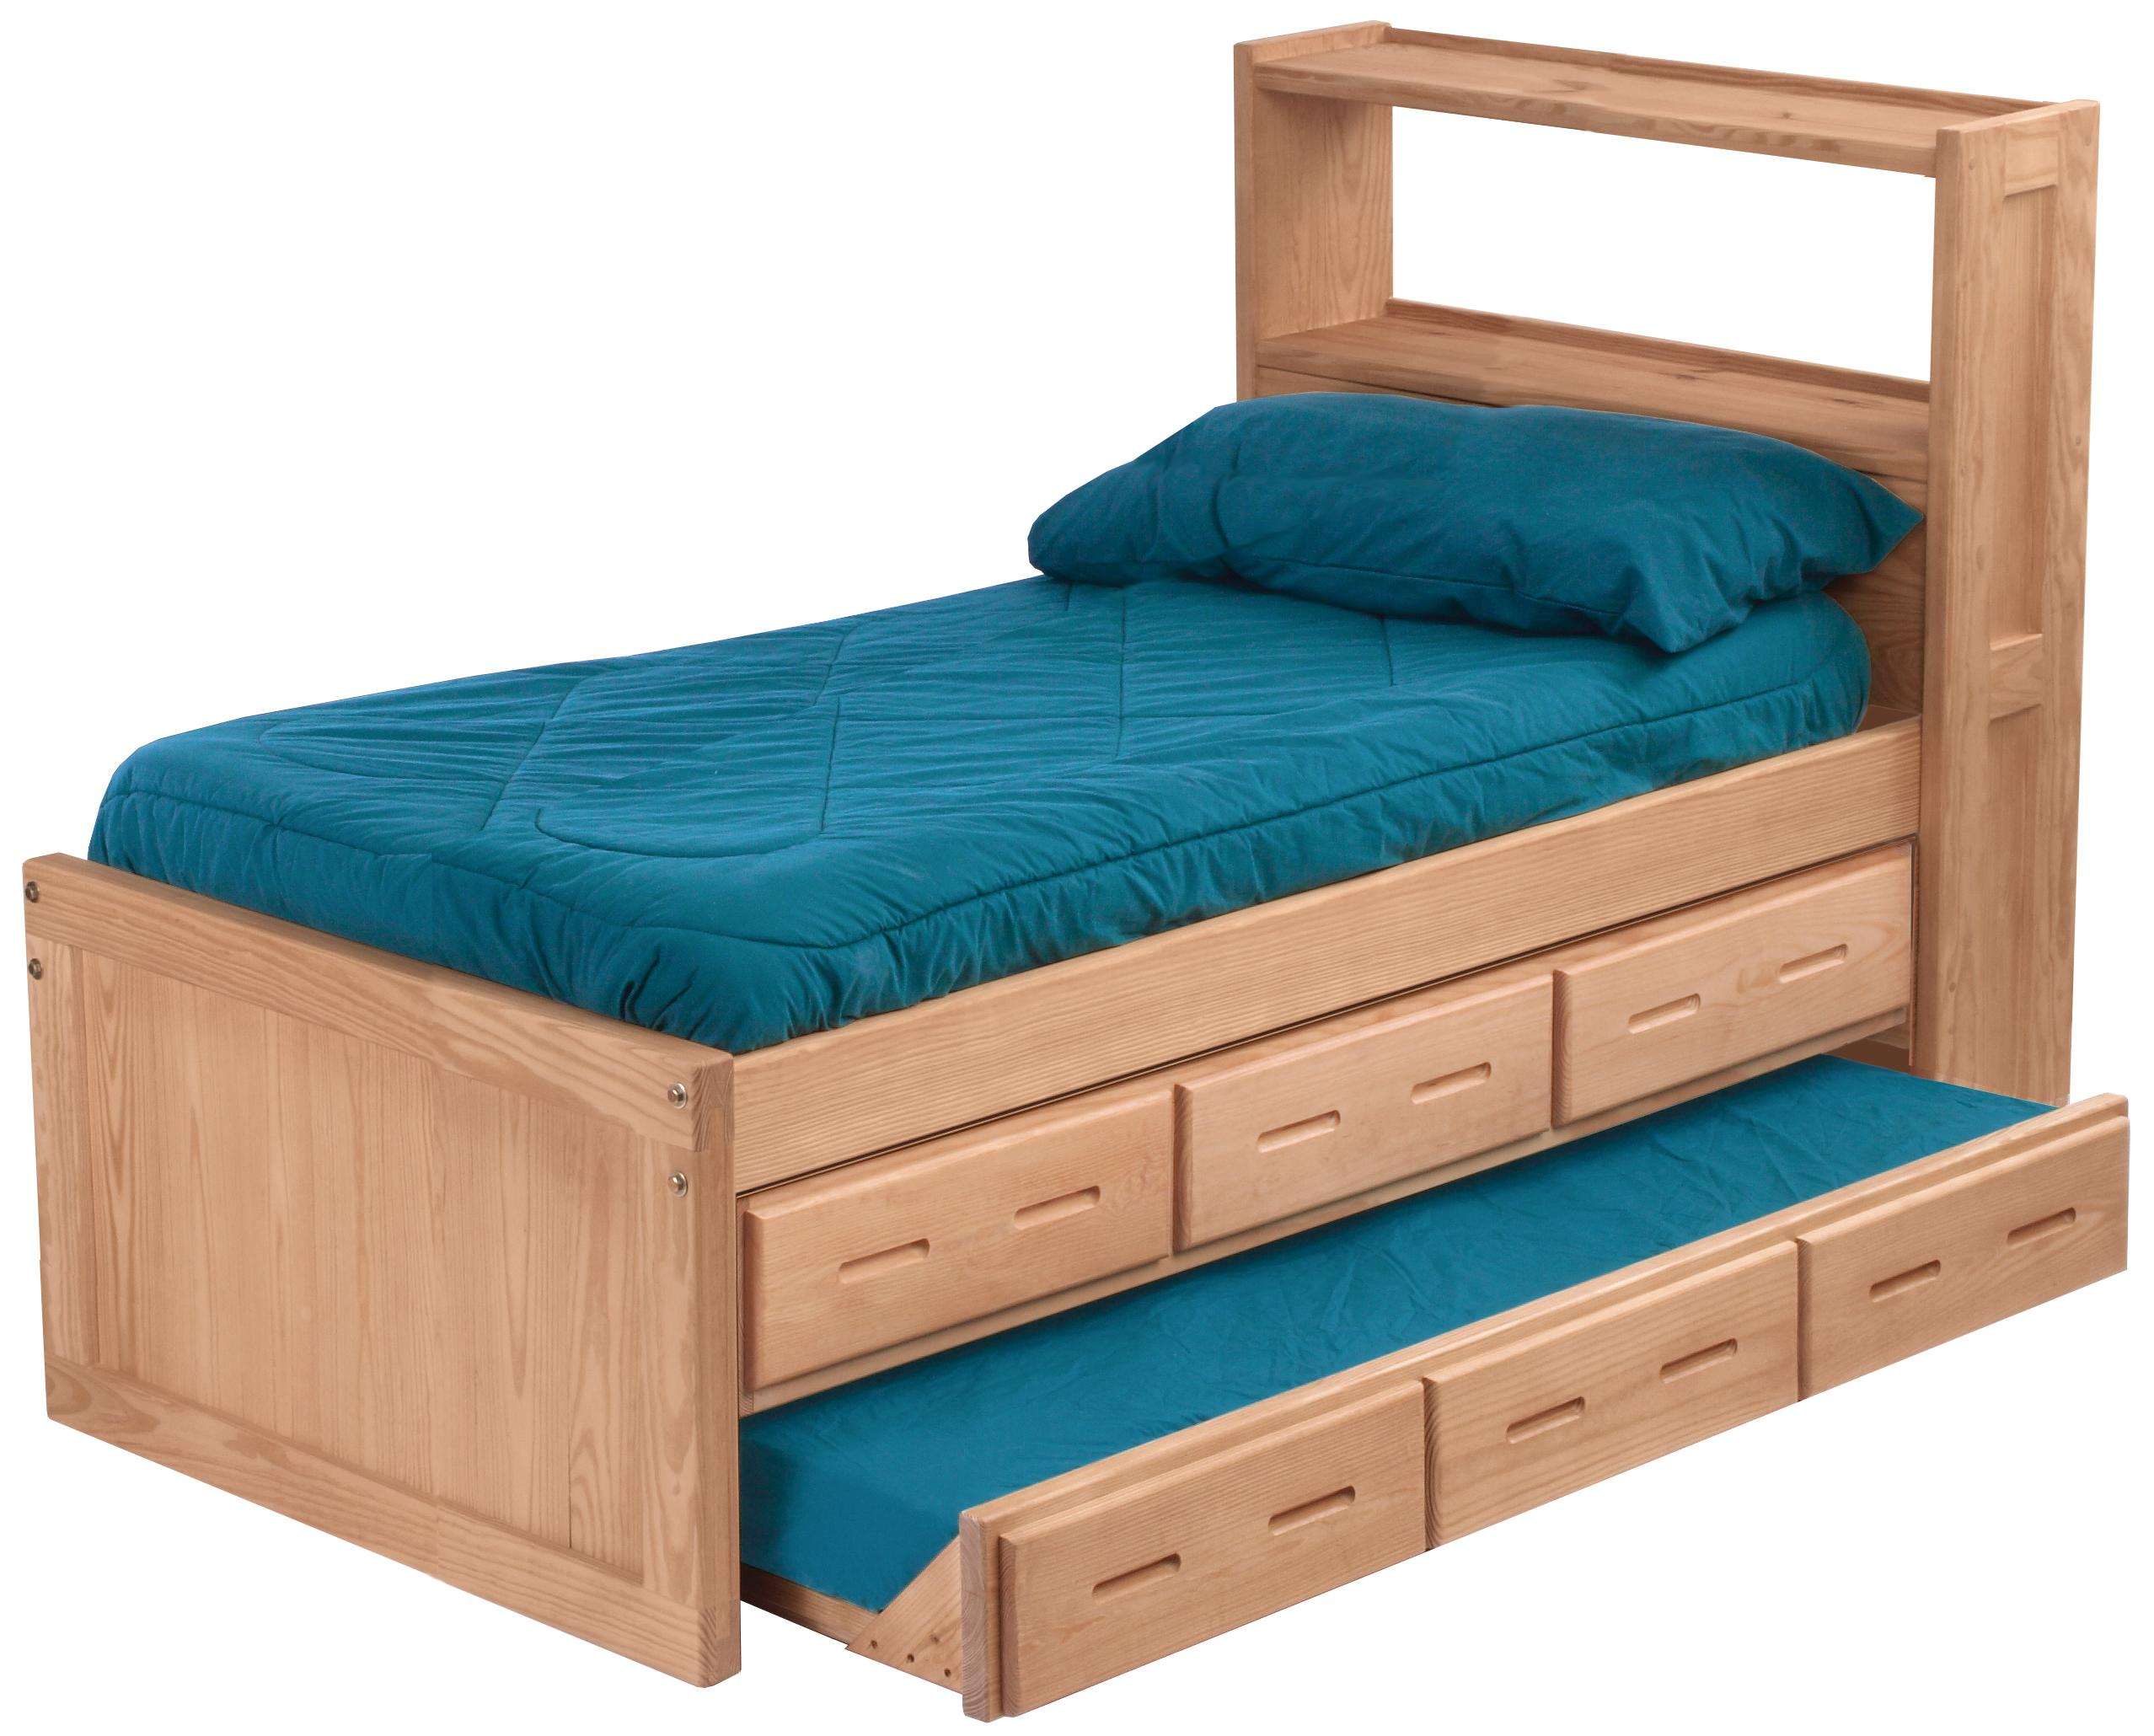 Pine Bedroom Twin Captain's Bed by Crate Designs at Jordan's Home Furnishings